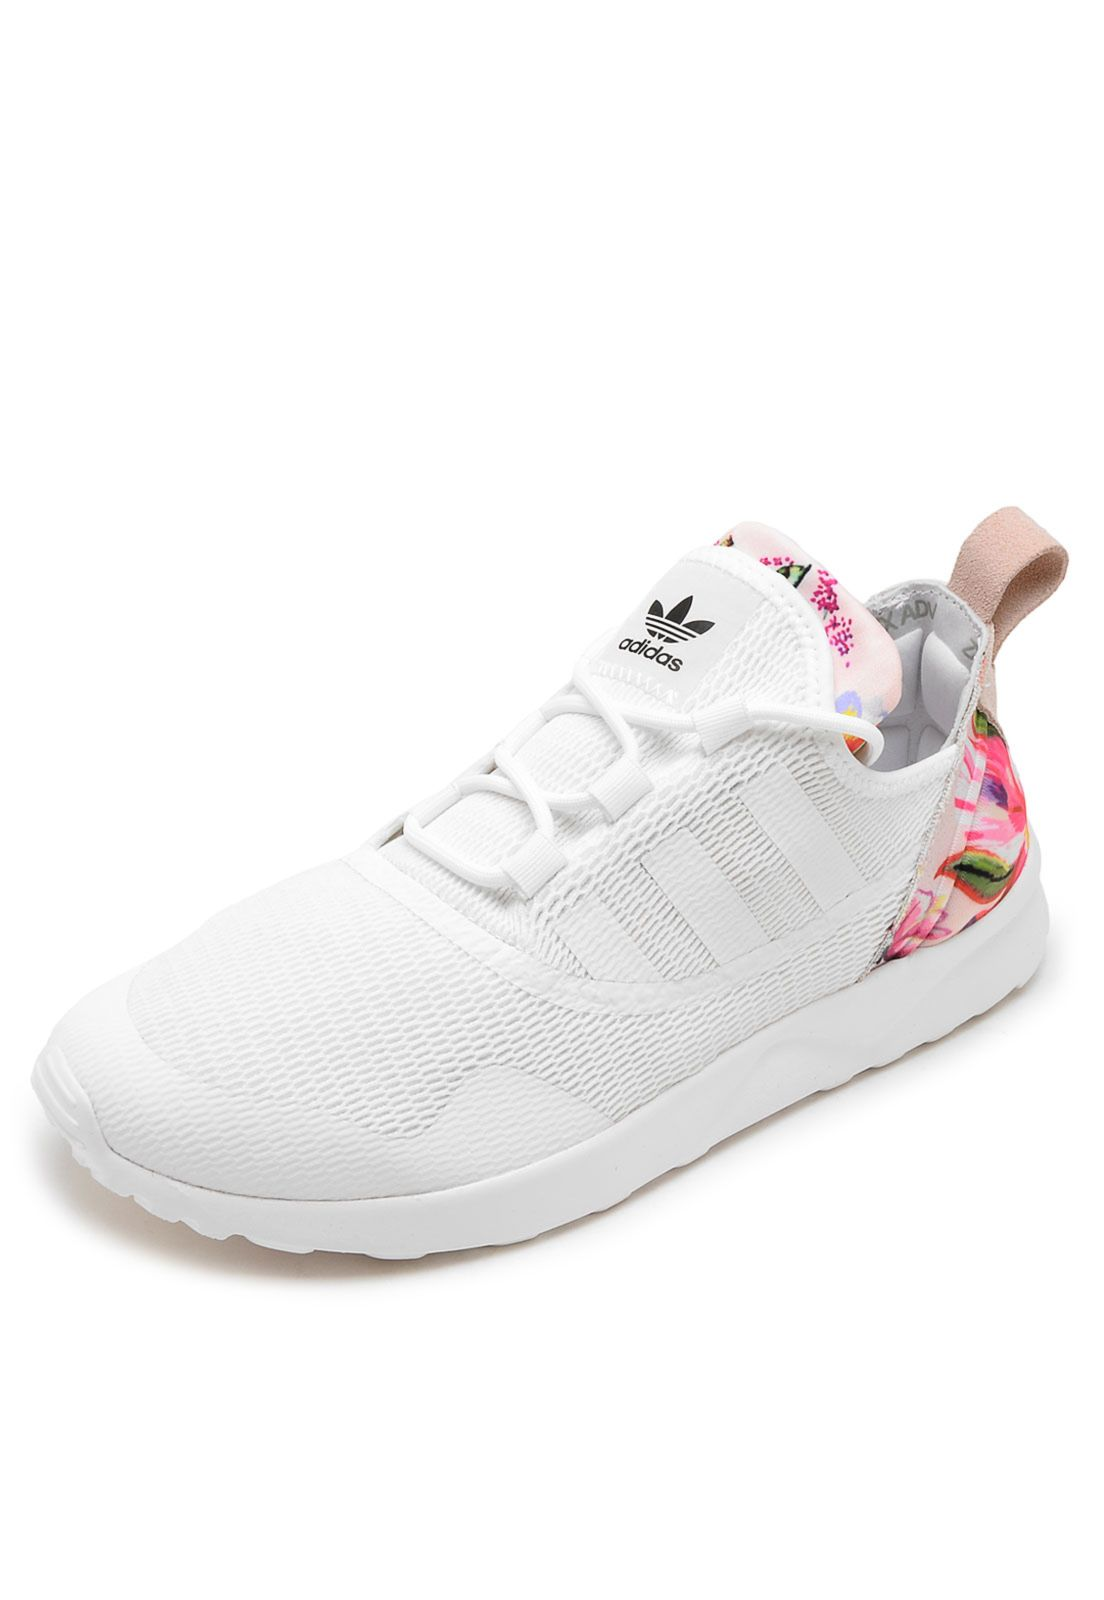 381454ed929 Tênis adidas Originals Farm ZX Flux ADV Virtue Branco - Marca adidas  Originals